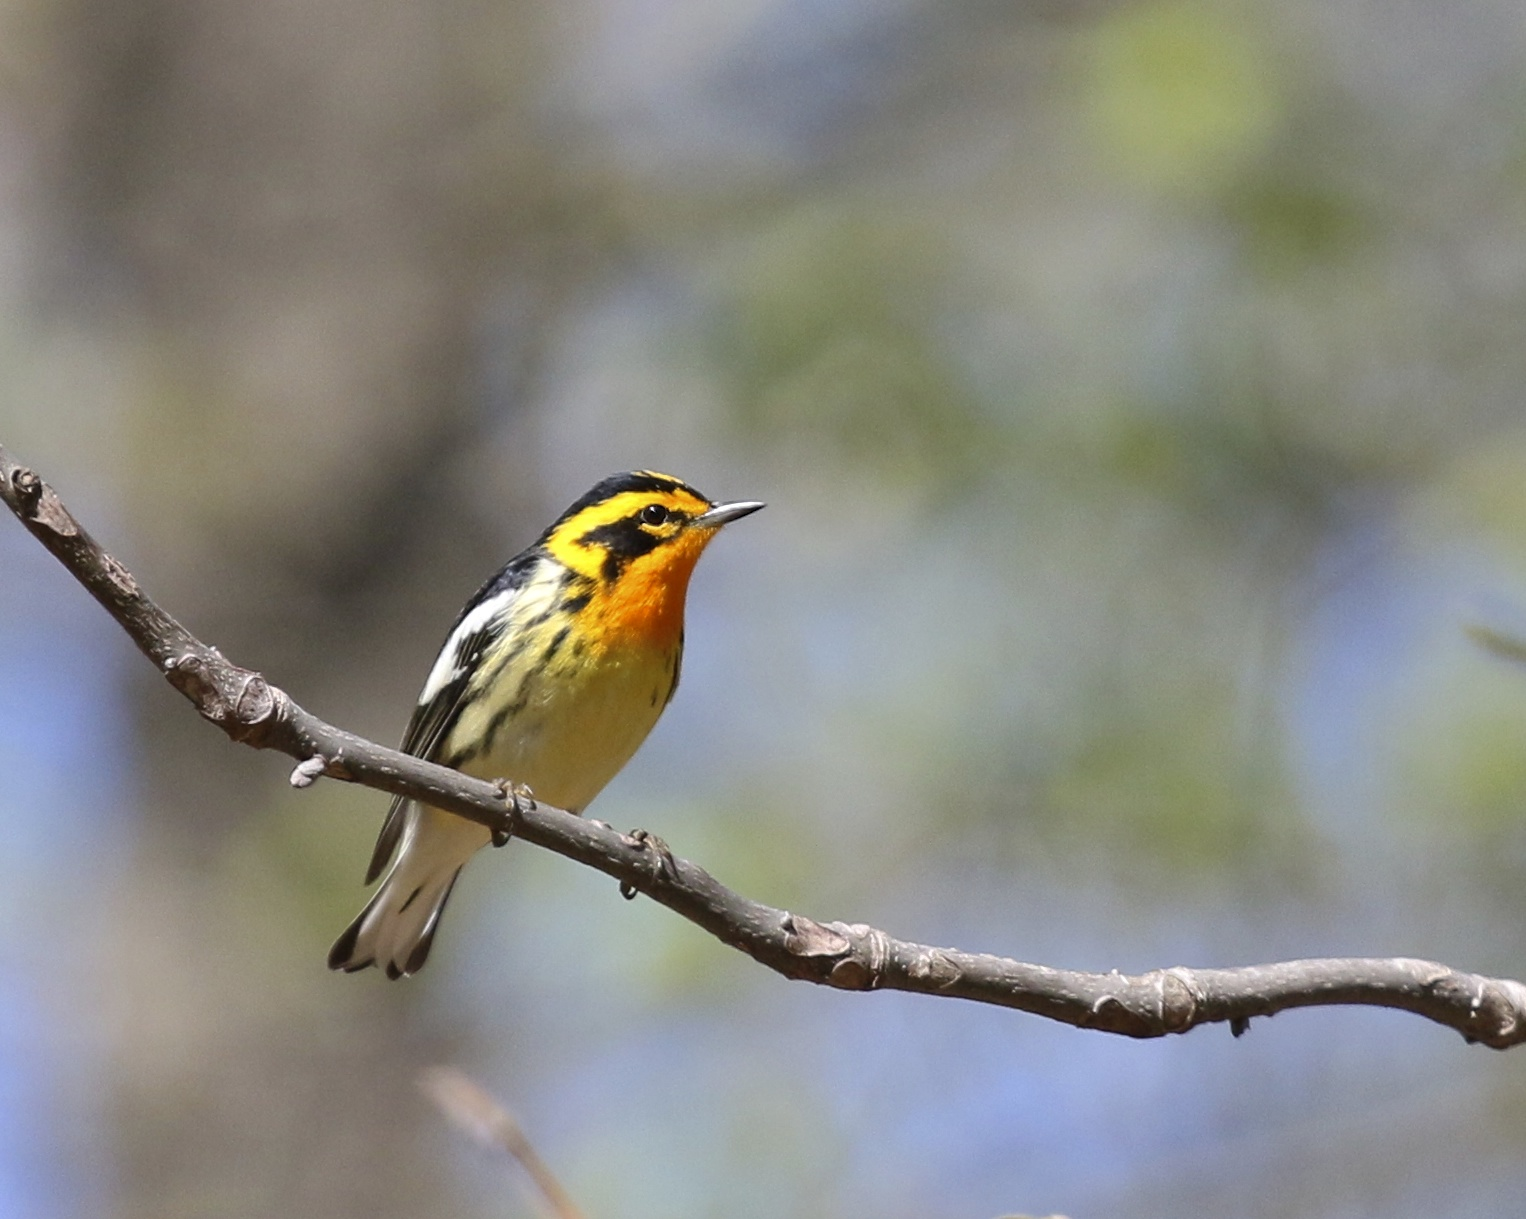 A Beautiful Blackburnian Warble at Pochuk Mountain State Forest, 5/11/14.